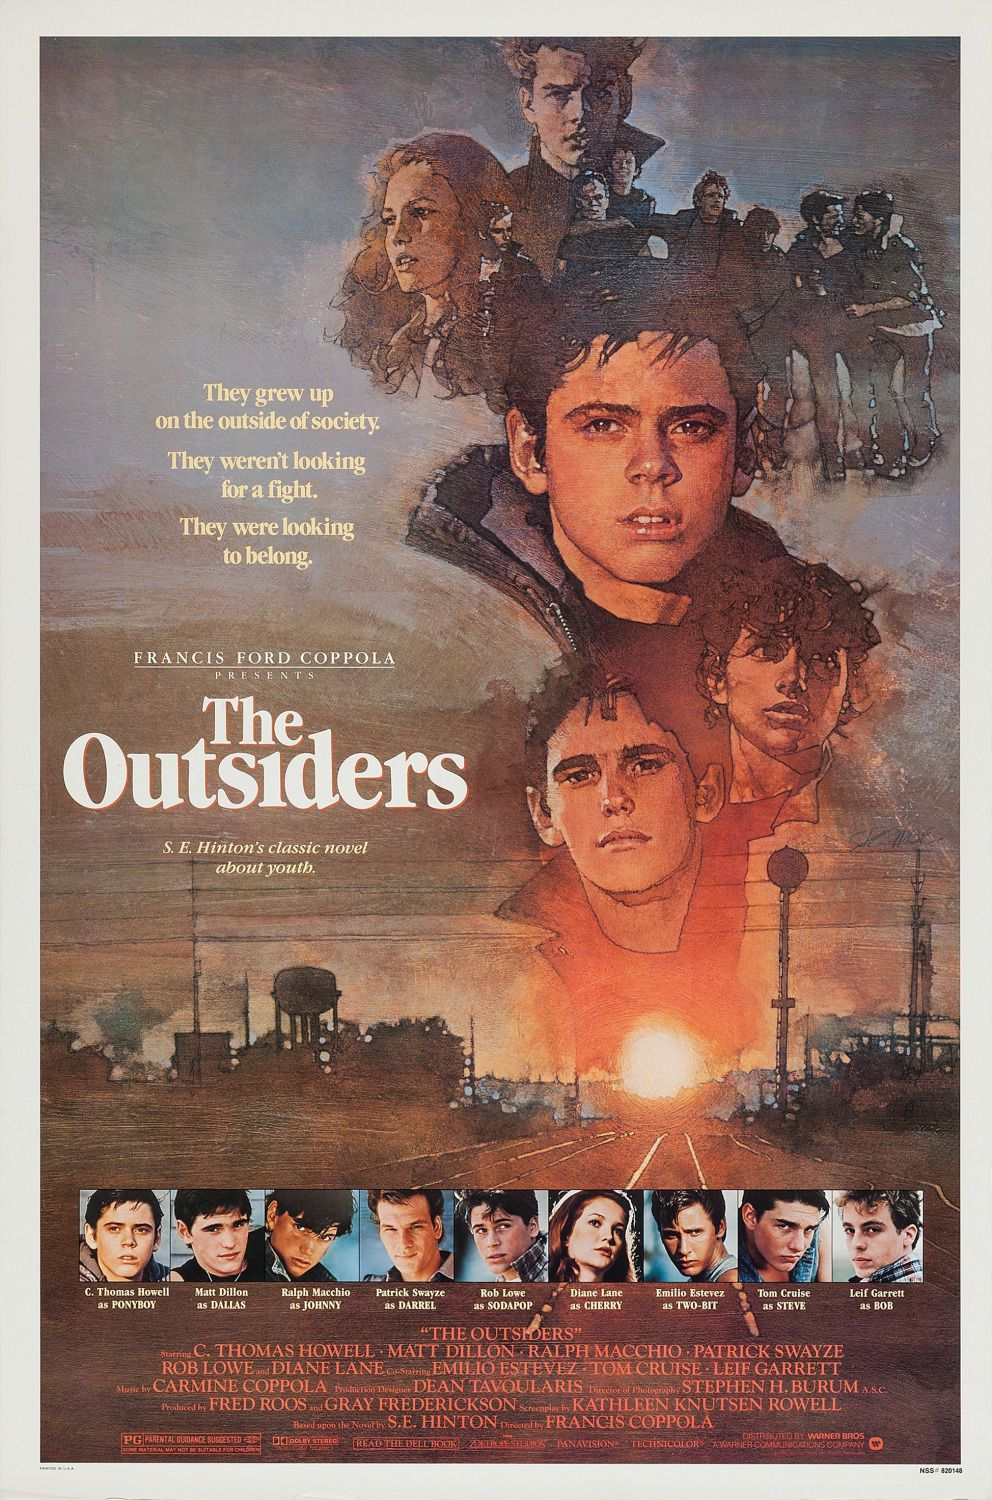 The Outsiders - They grew up on the outside of society. They weren't looking for a fight. They were looking to belong. C. Thomas Howell - Matt Dillon - Ralph Macchio - Patrick Swayze - Rob Lowe - Diane Lane - Emilio Estevez - Tom Cruise - Leif Garrett - Francis Ford Coppola 1983 film poster